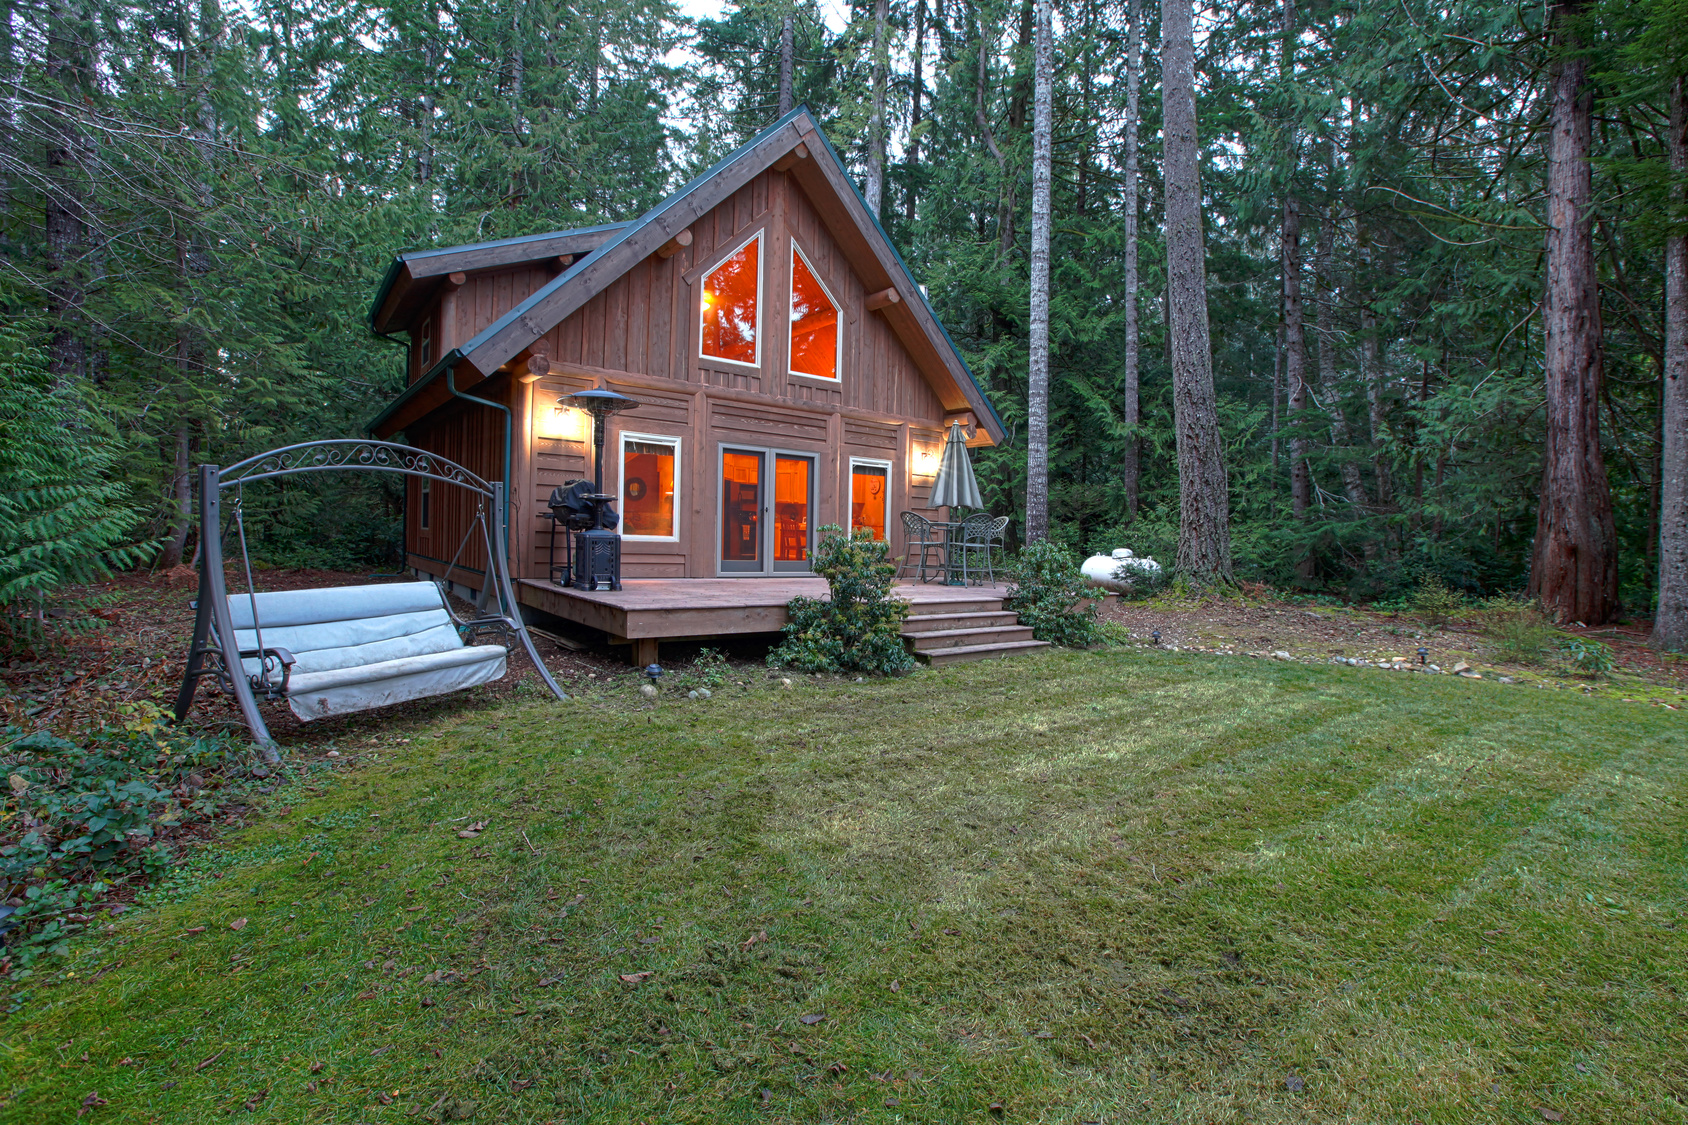 pigeon smoky cabins in luxury cabin mountains property forge featured image rentals